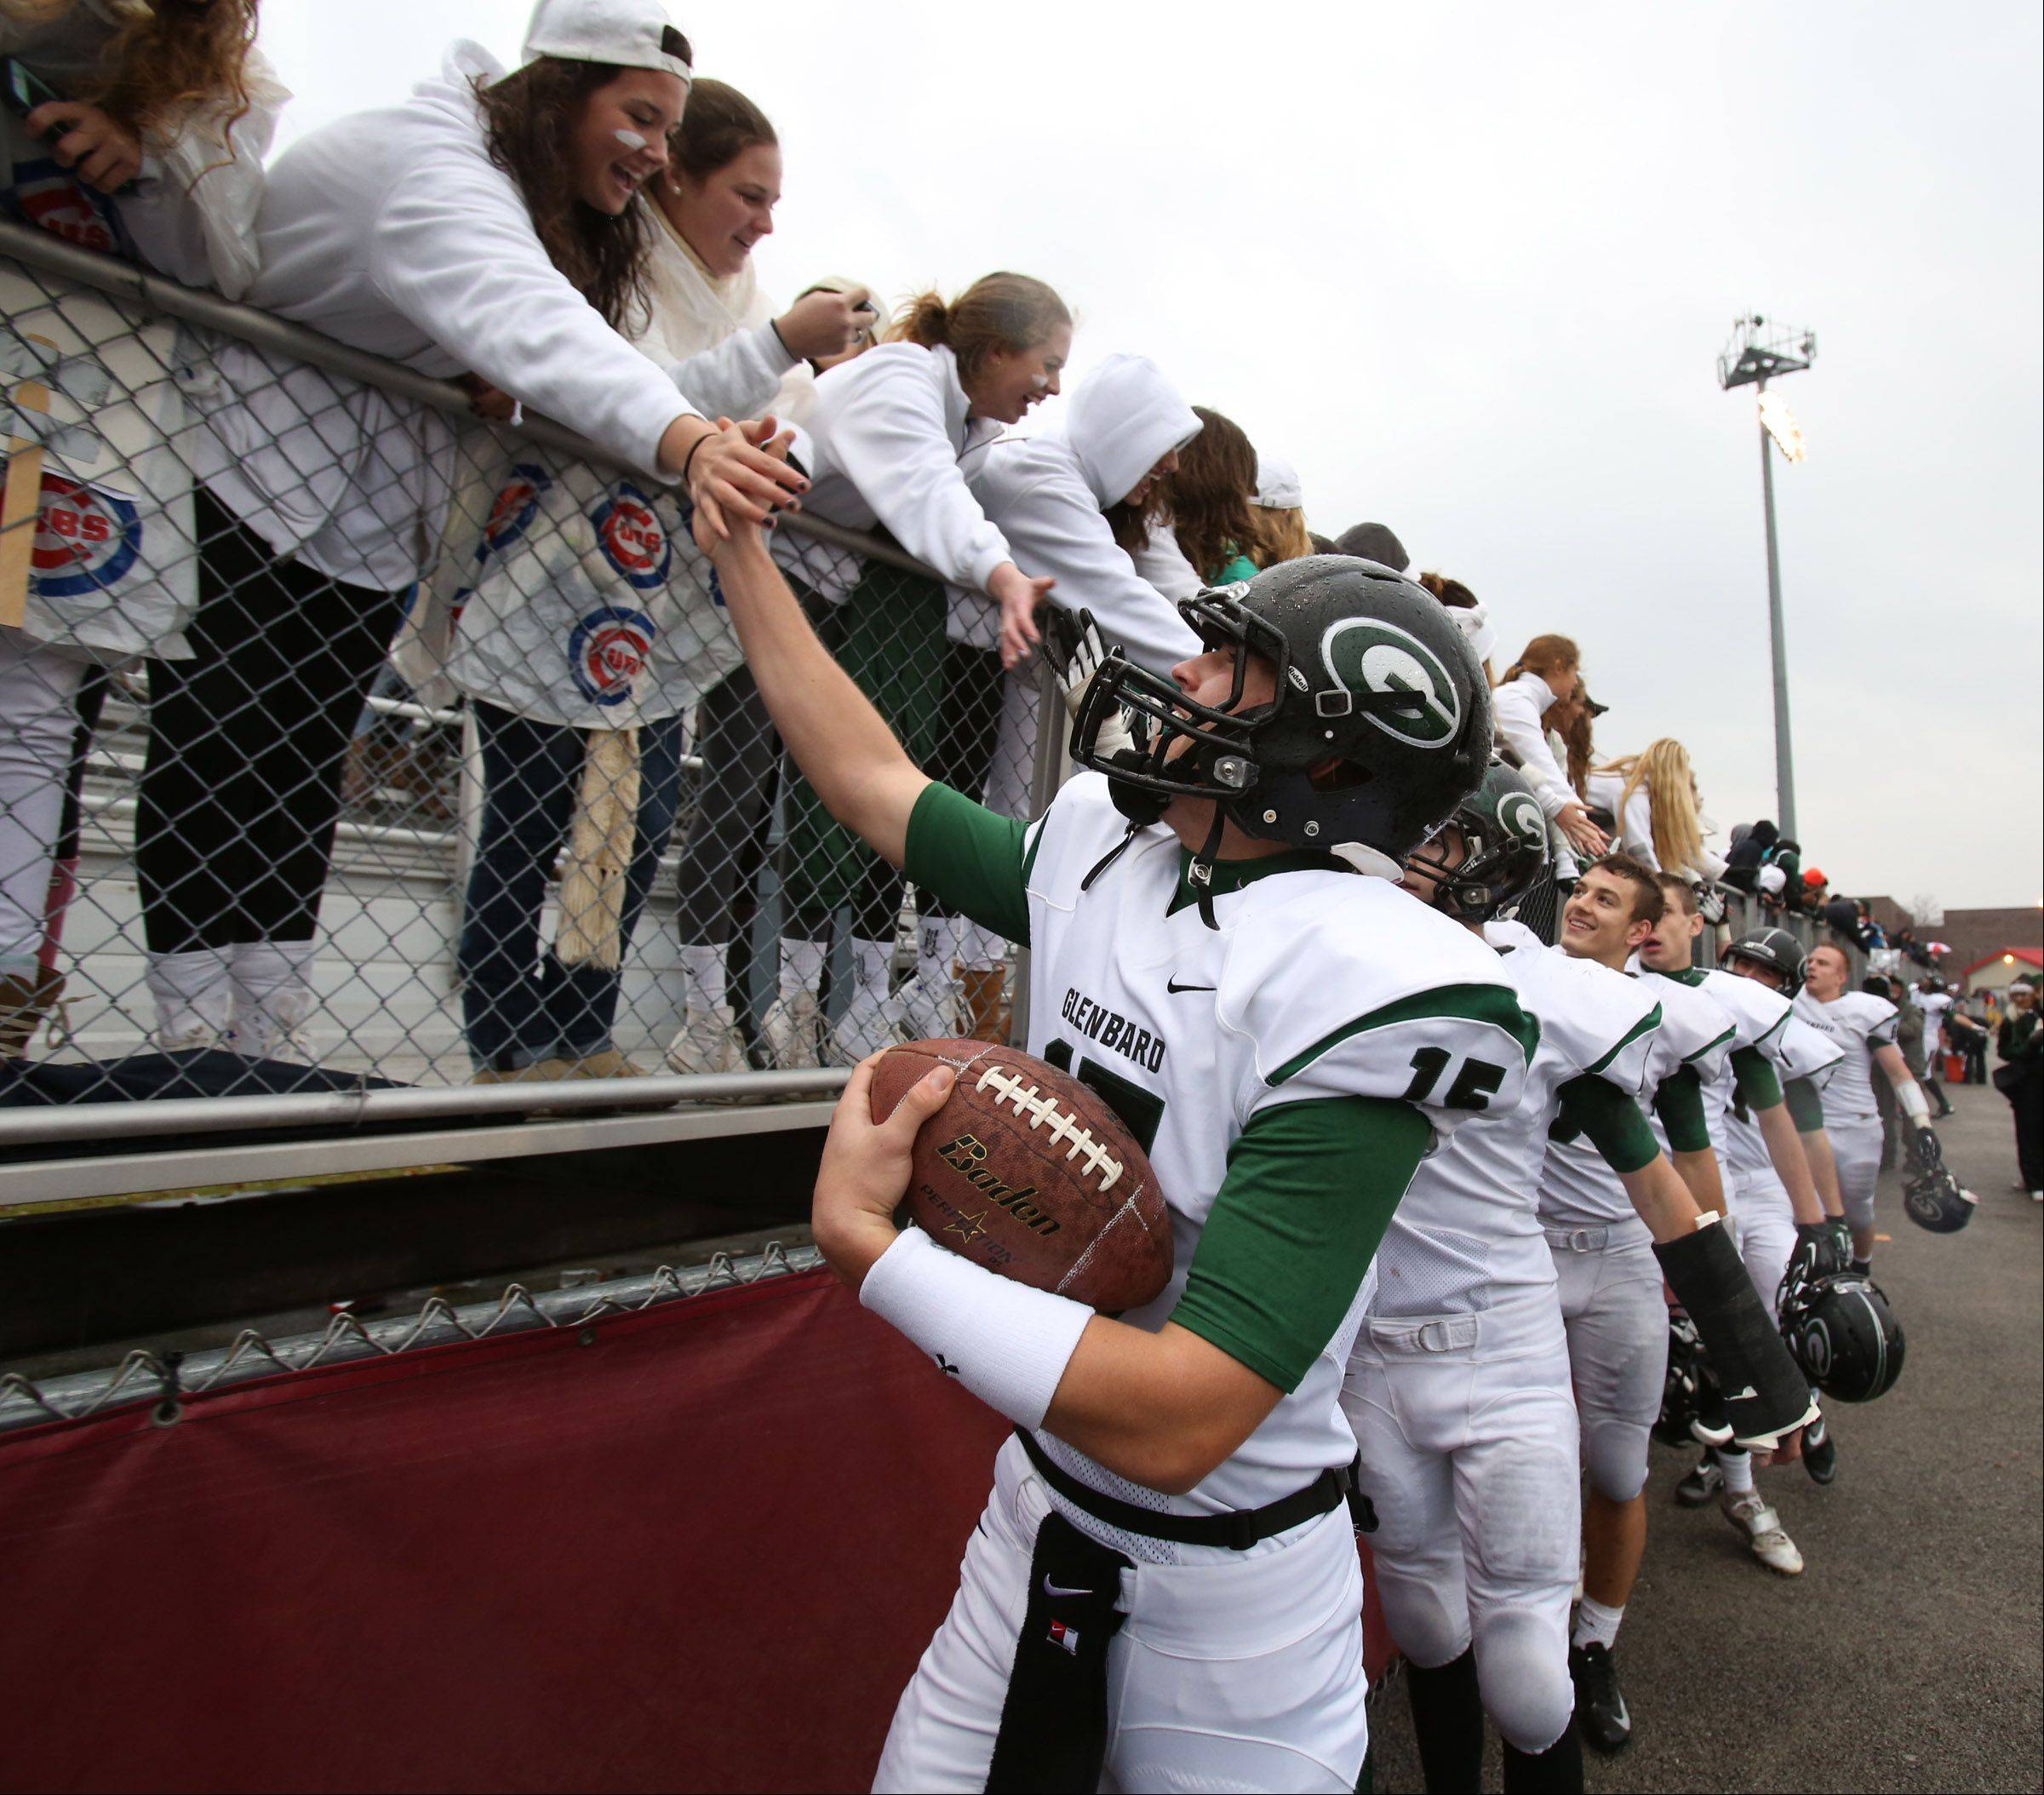 Glenbard West quarterback Kevin Dawrant celebrates with fans as Glenbard West wins 42-21 over Schaumburg in a quarterfinal playoff game on Saturday, November 16th, in Schaumburg.